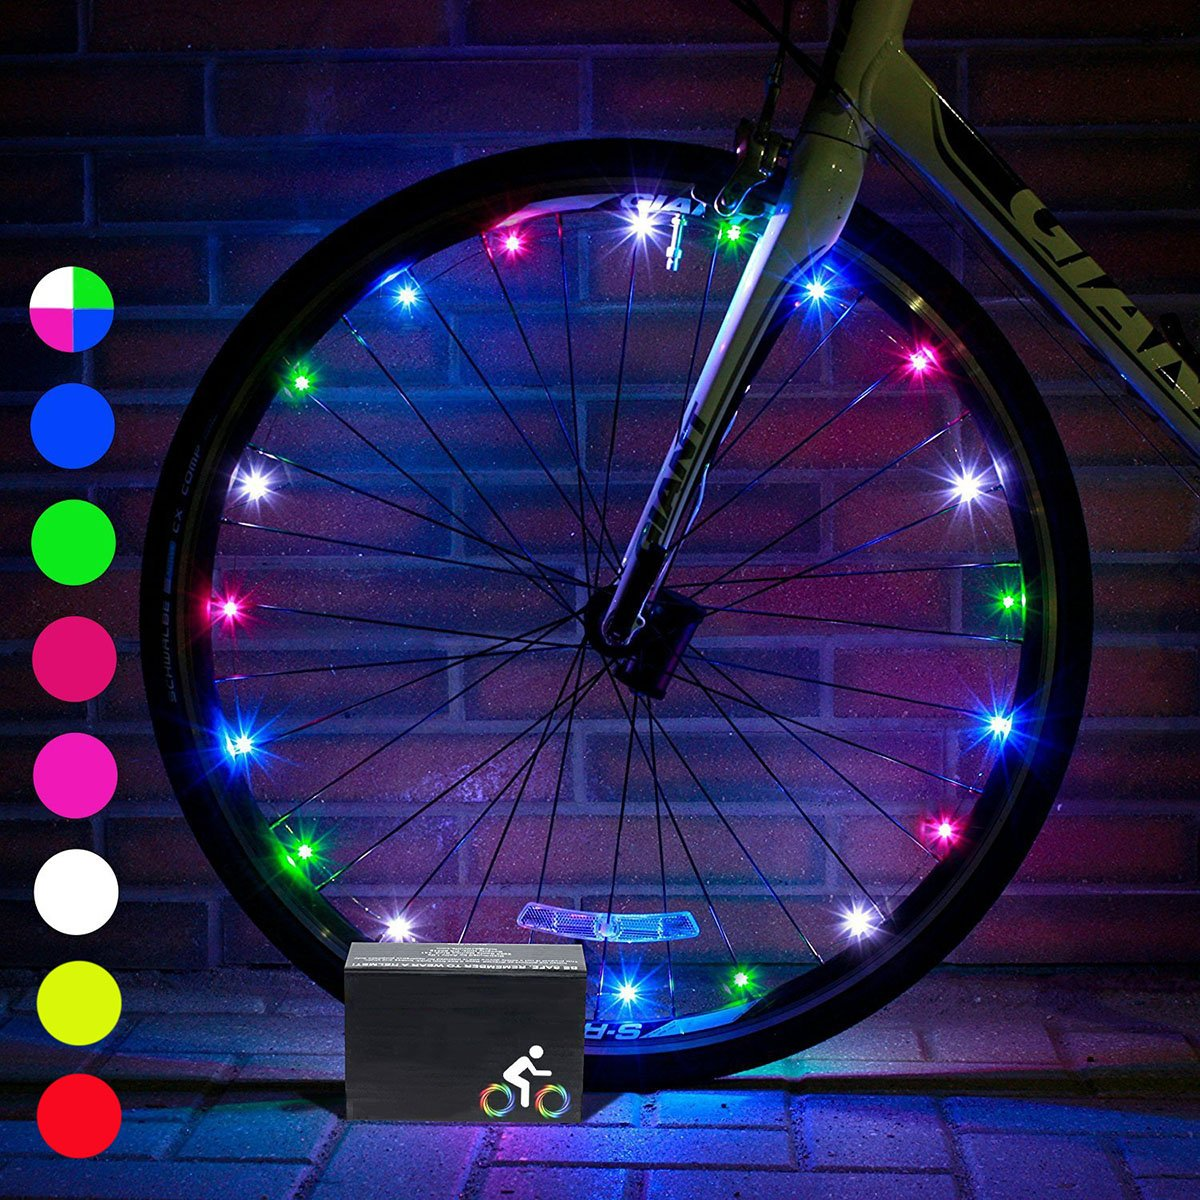 DIMY Bike Wheel Lights, LED Bike Wheel Light for Boys Toys for 5-16 Year Old Boys 5-14 Year Old Boy Gifts for Teen Girl Outdoor Toys Multicolor TTB07 by DIMY (Image #2)